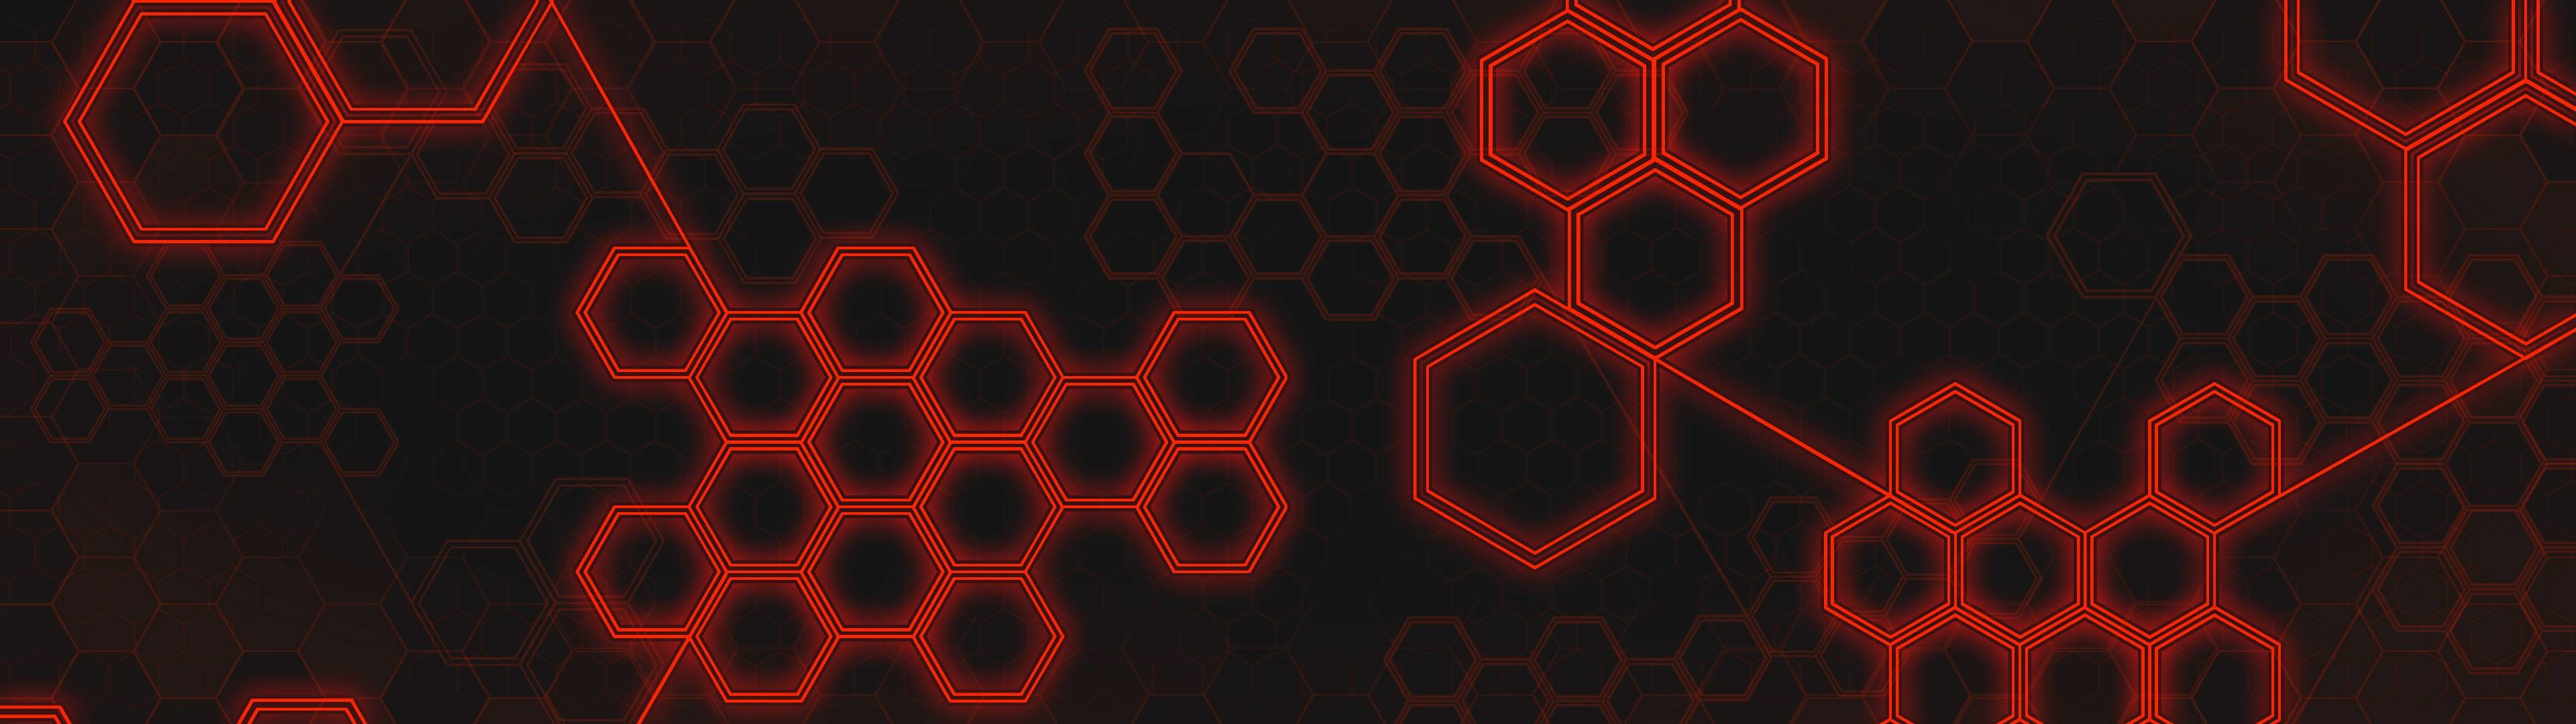 Red Hexagons. Made by me for two screens.